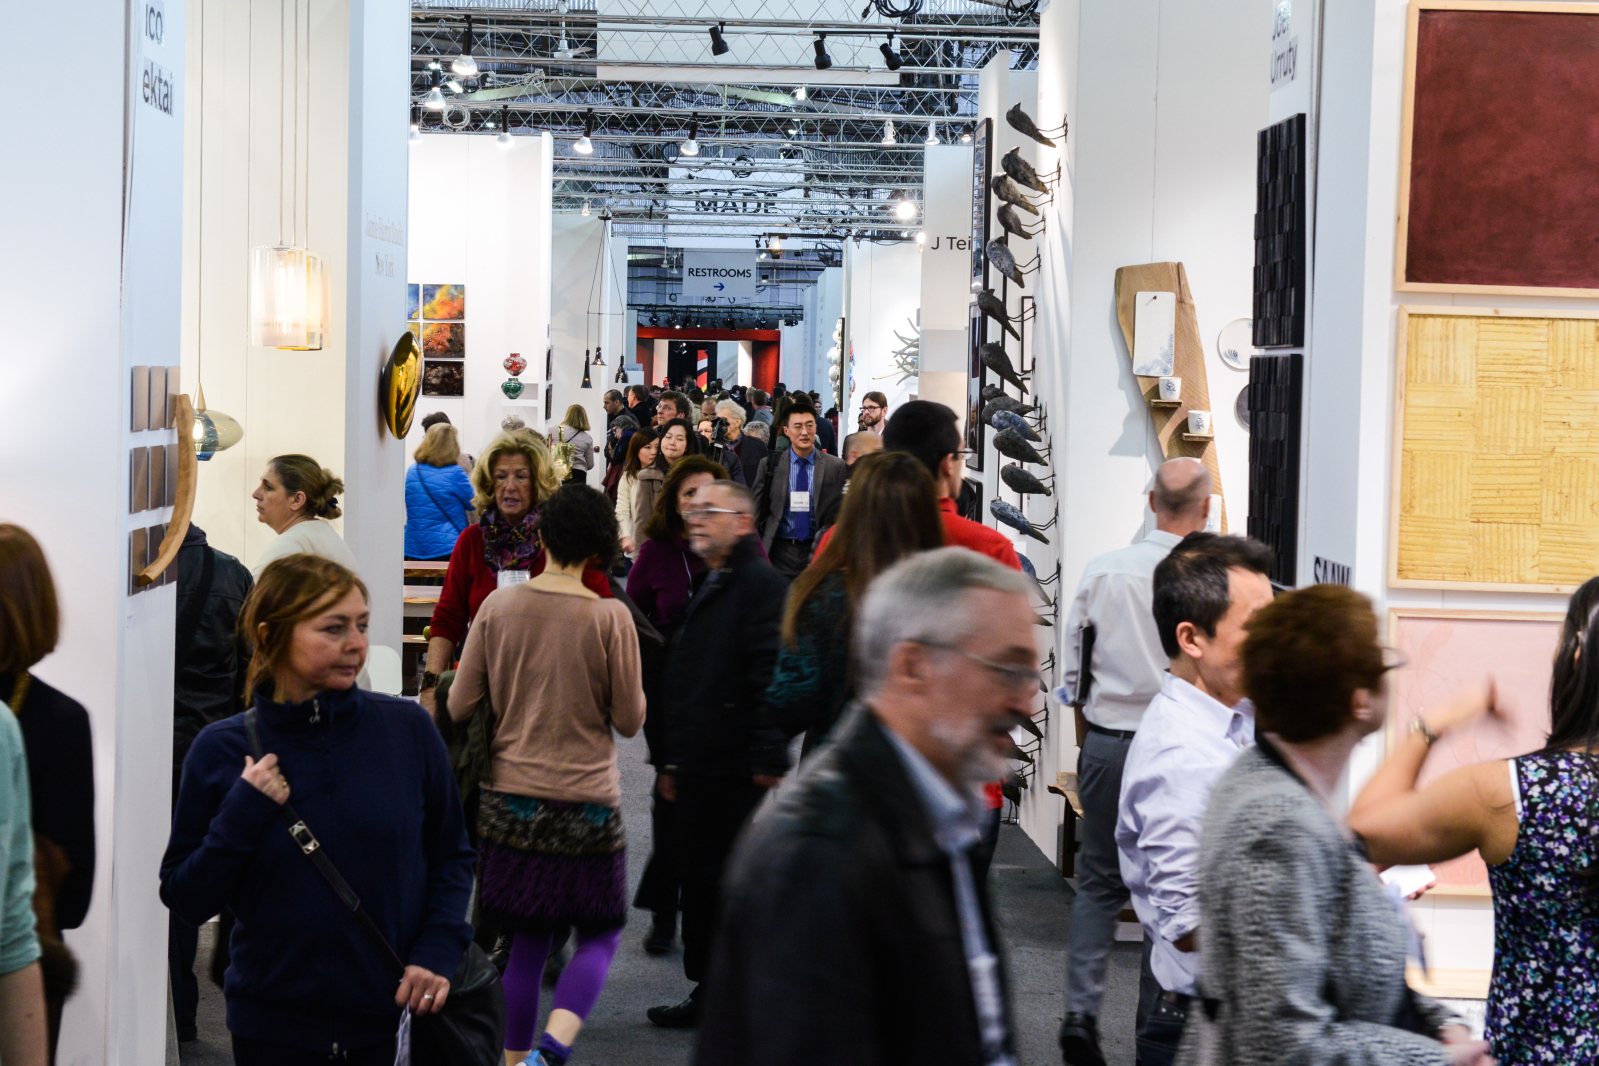 Getting Ready For AD Show 2017: 5 must-see brands AD Show 2017 Getting Ready For AD Show 2017: 5 must-see brands what to expect from ad show 2017 1 AD Show 2017 GETTING READY FOR AD SHOW 2017: 5 MUST-SEE BRANDS what to expect from ad show 2017 1